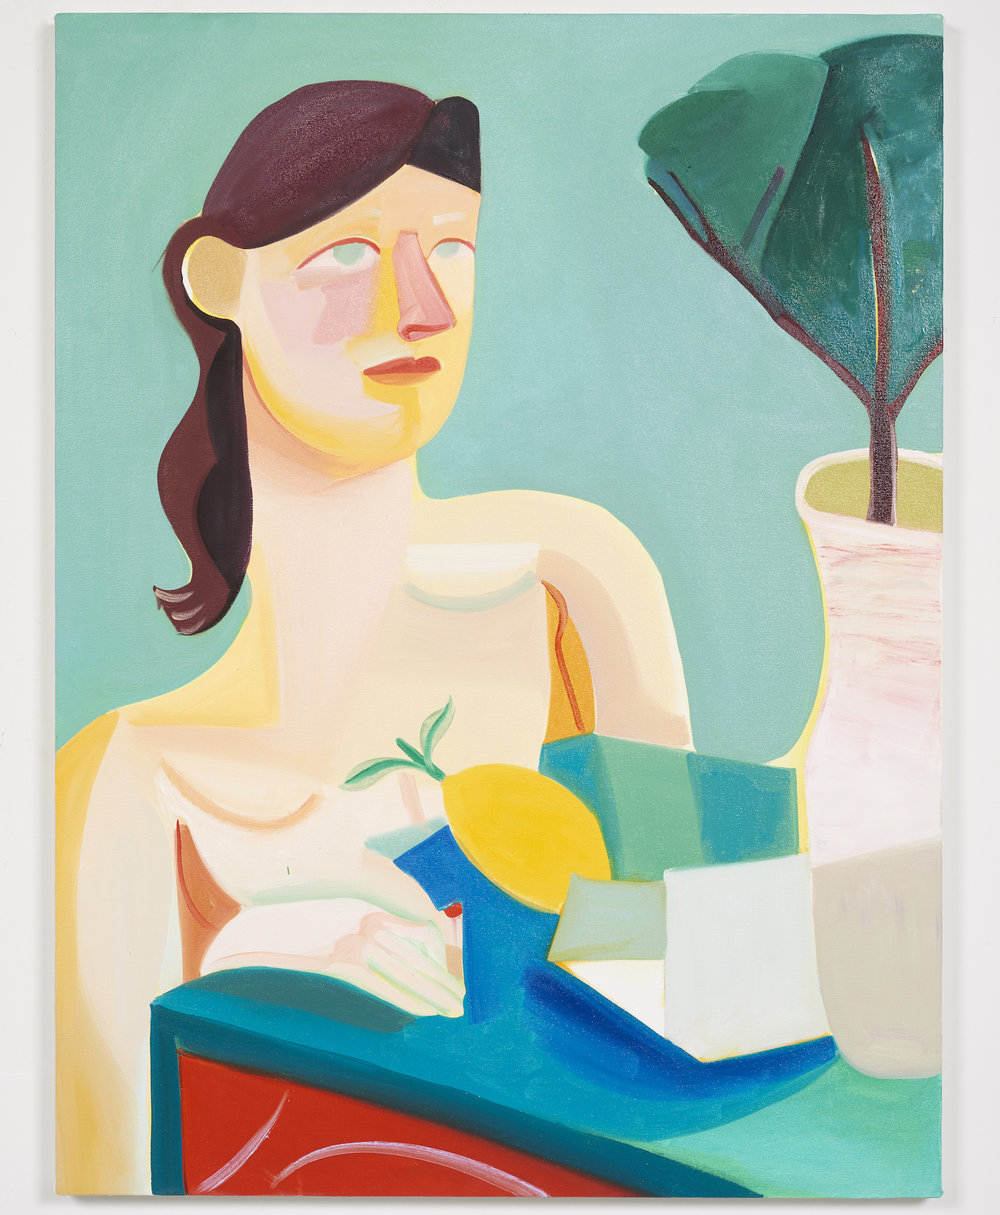 Danielle Orchard - Girl Reading a Letter, 2017,Oil on canvas,40 x 30 inches.Courtesy of the artist and Jack Hanley Gallery.